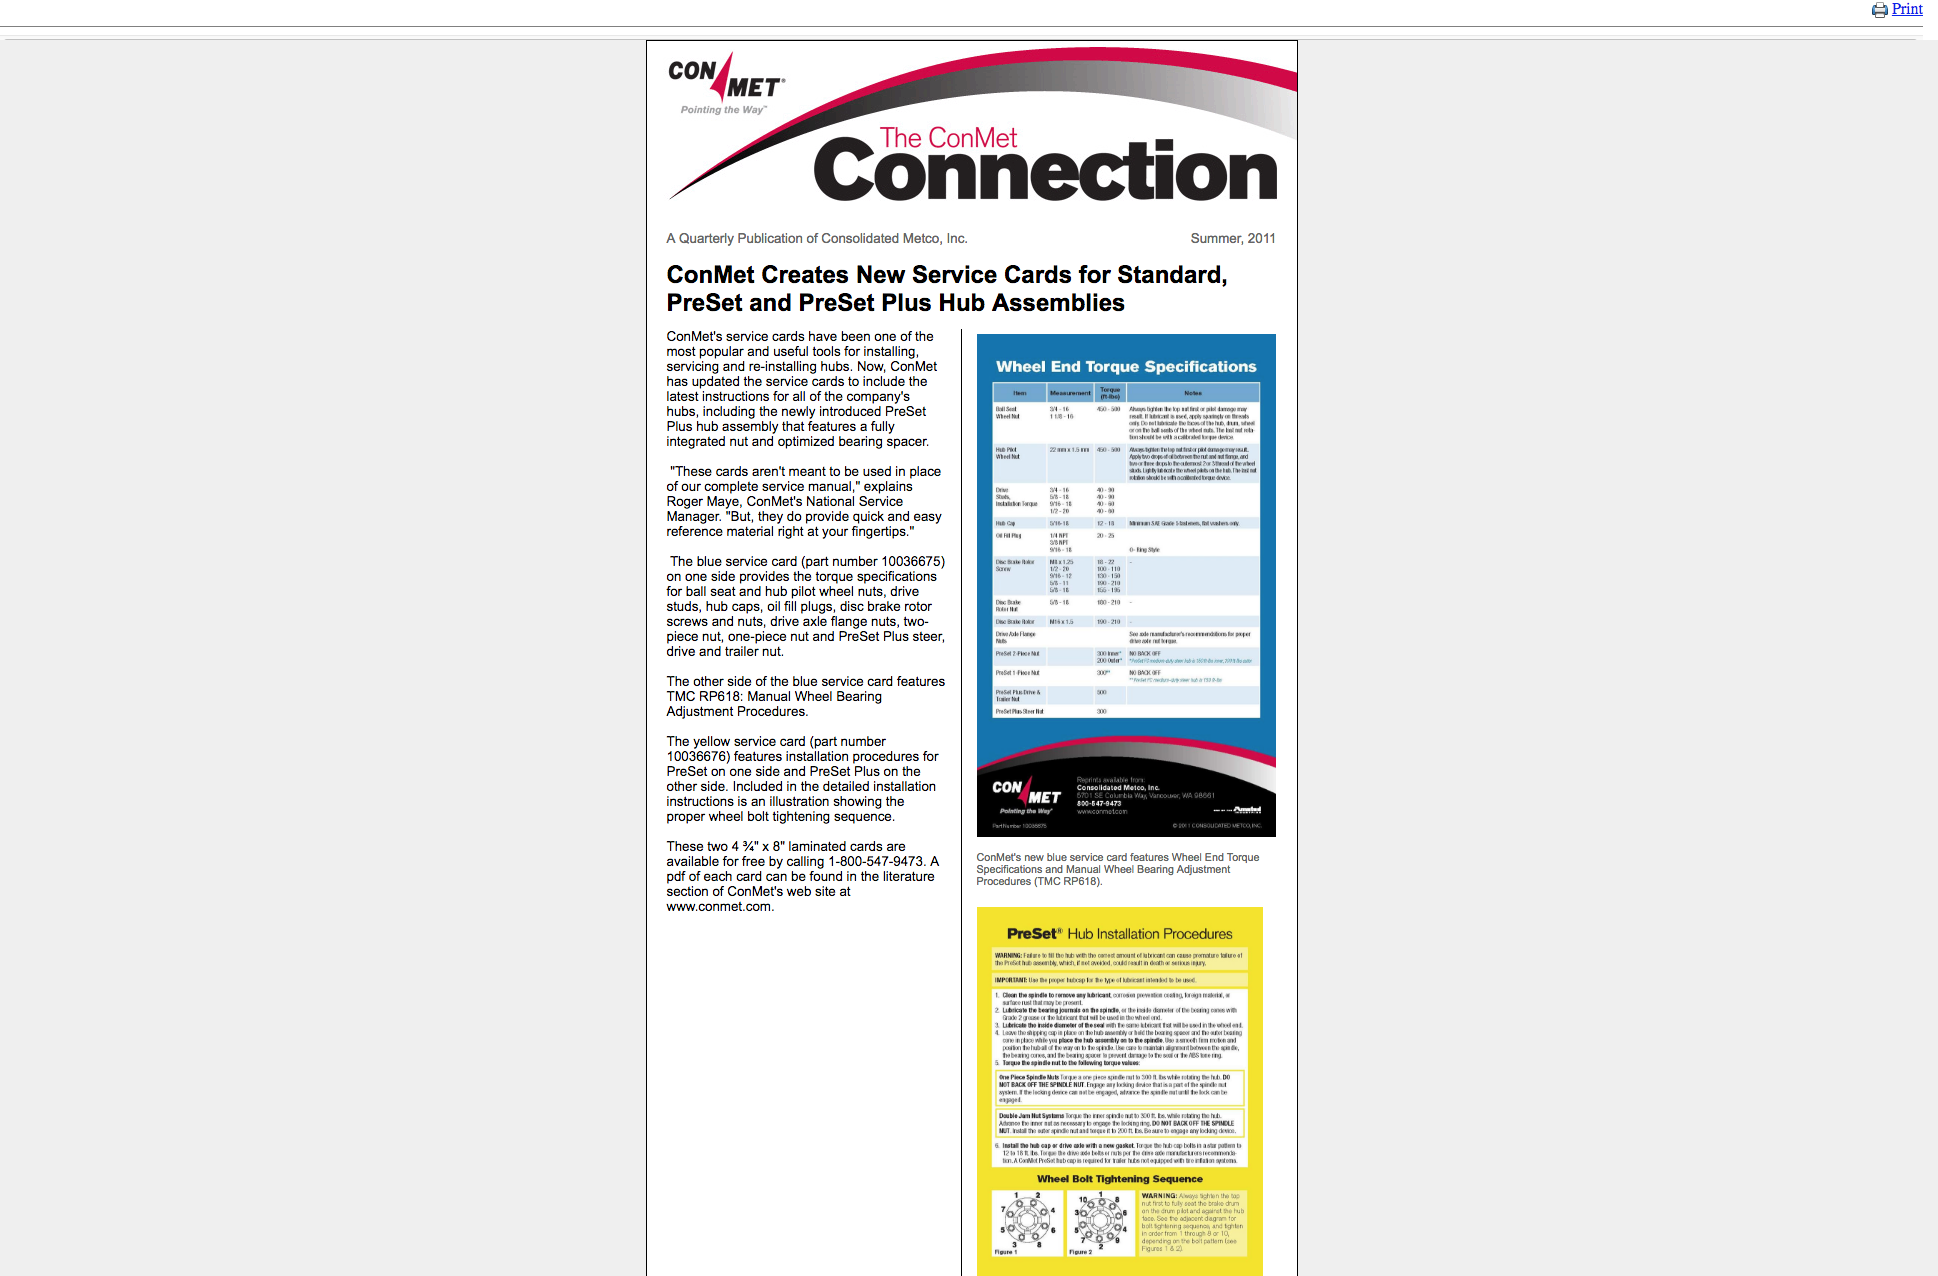 Summer 2011 – ConMet Creates New Service Cards for Standard, PreSet and  PreSet Plus Hub Assemblies